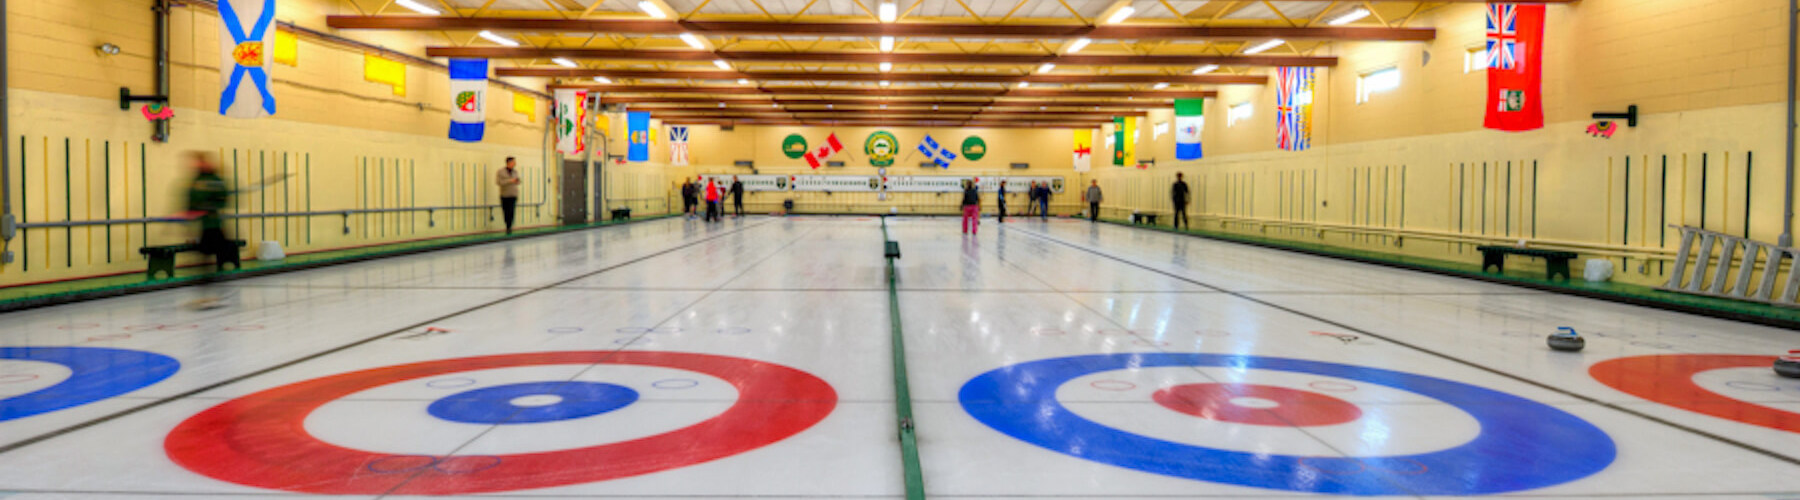 Whitlock Curling Rink